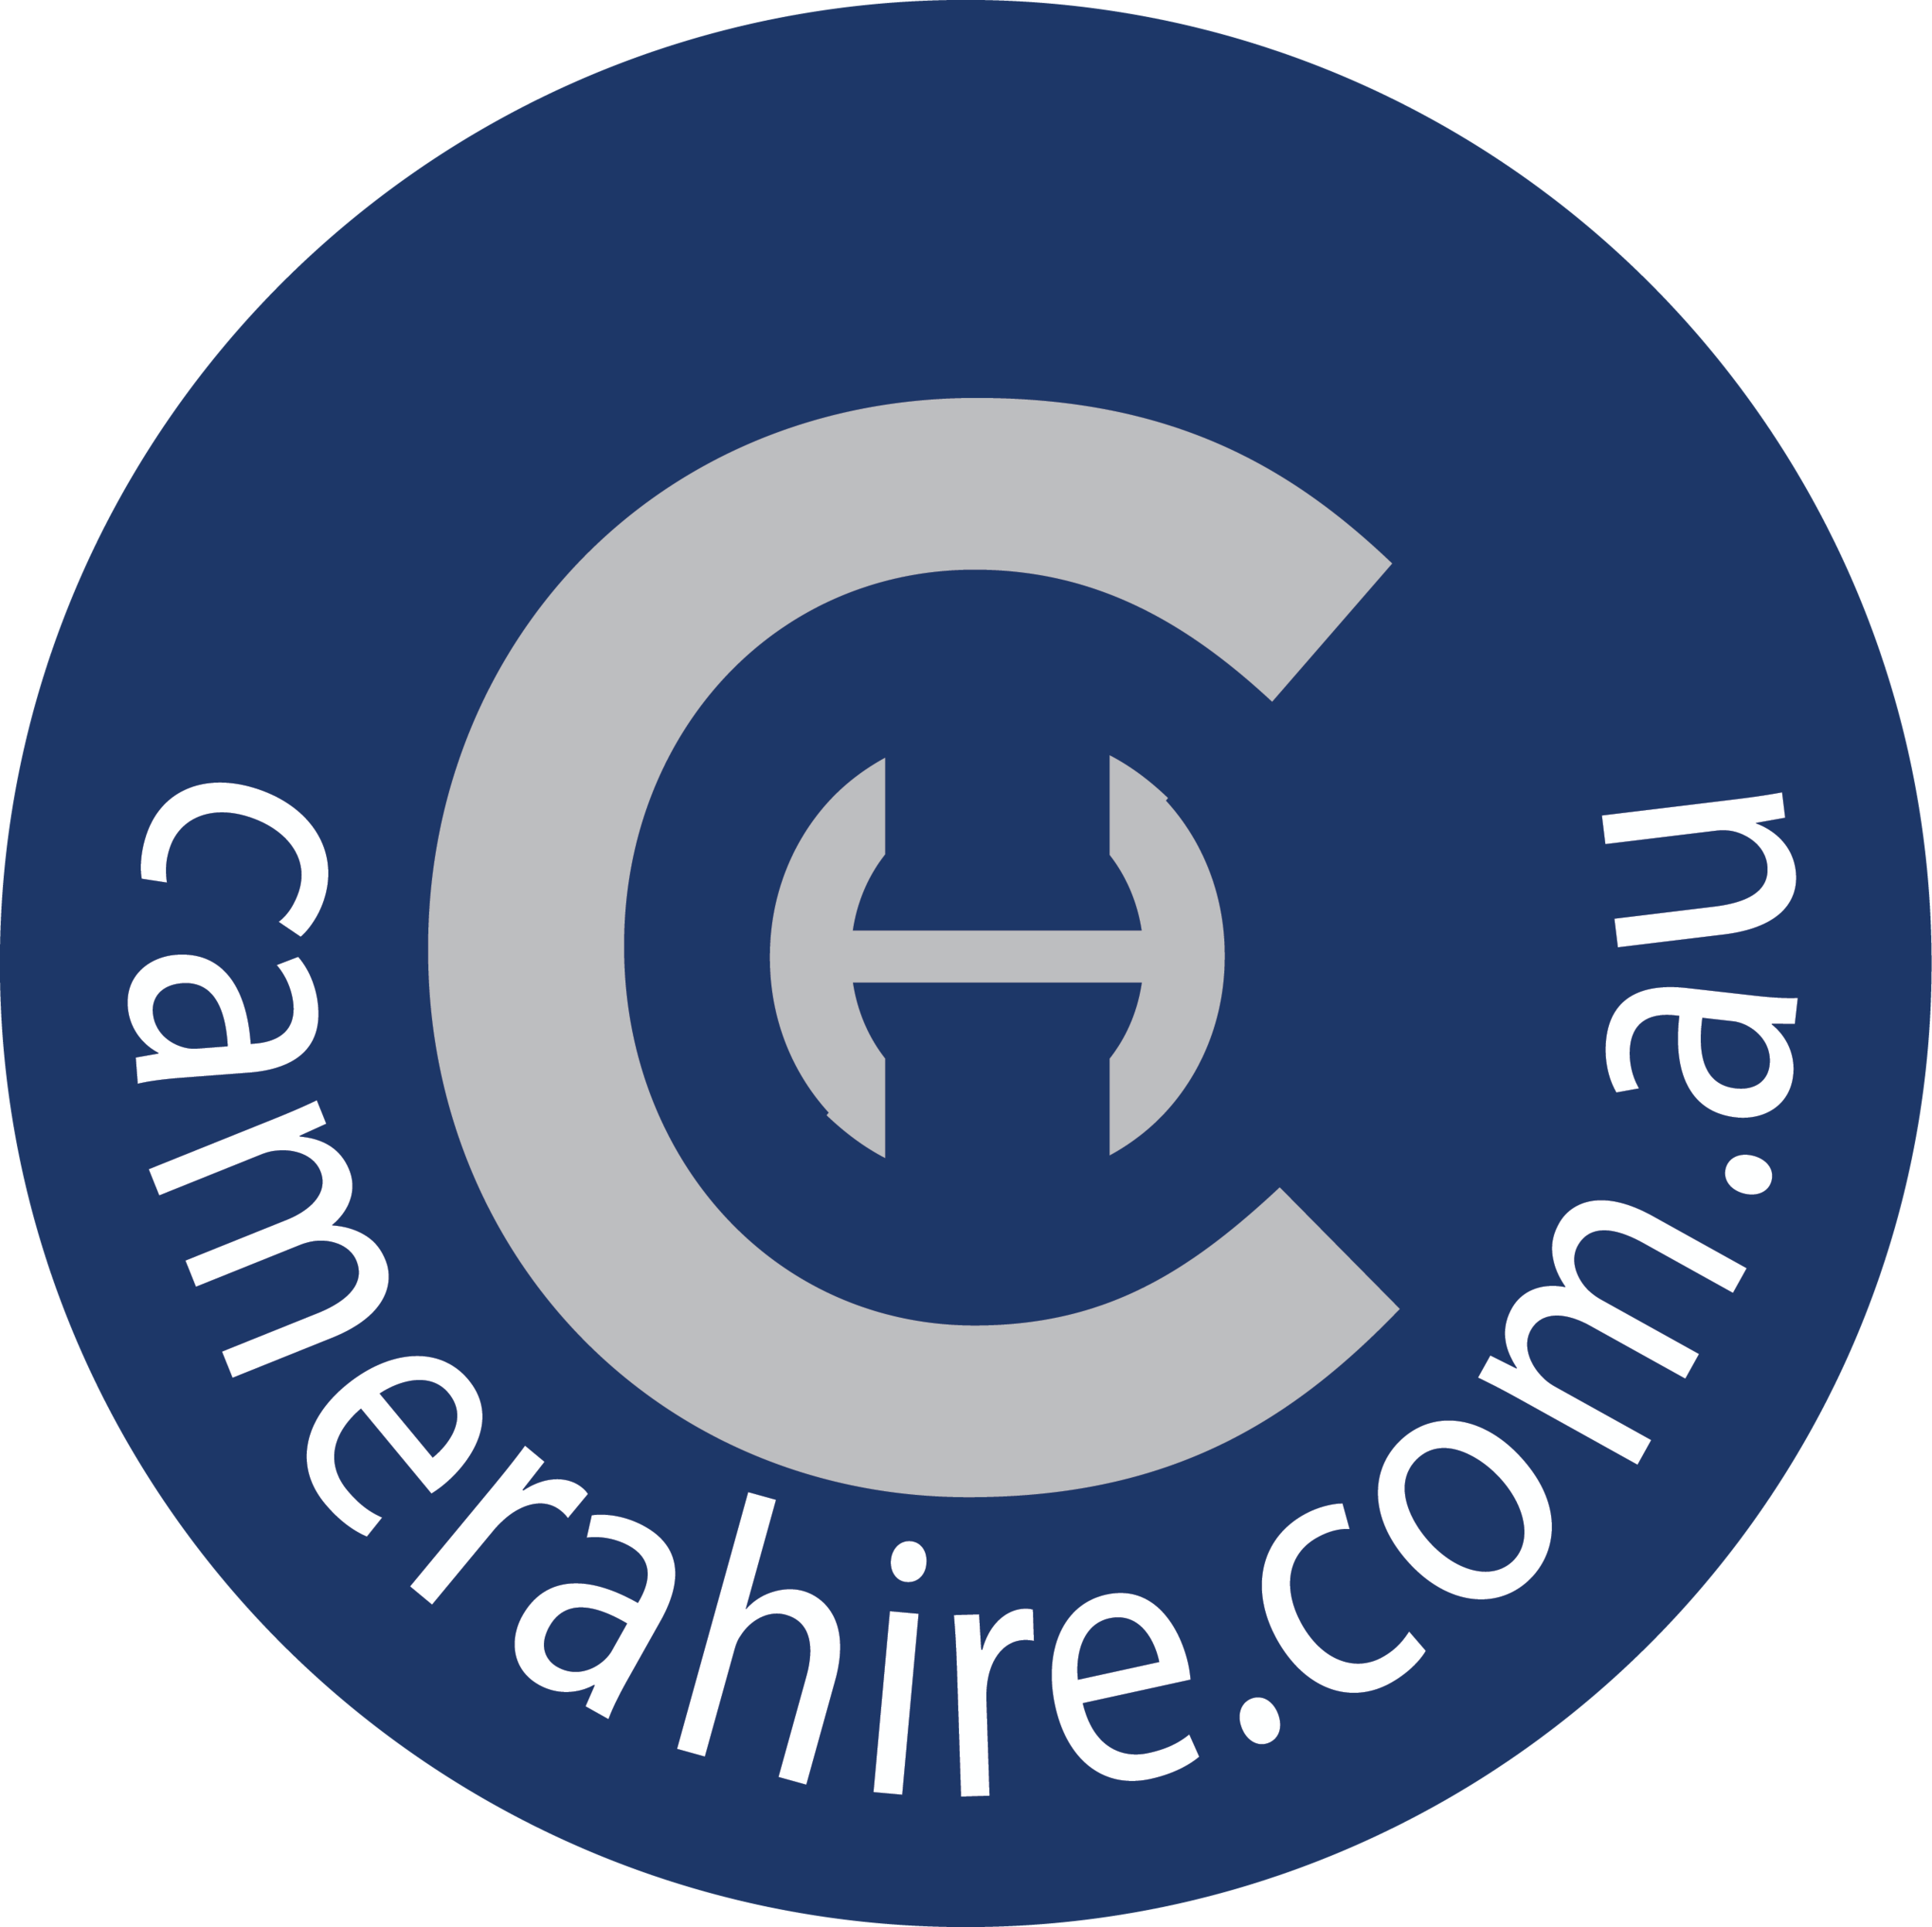 camera hire logo round.png